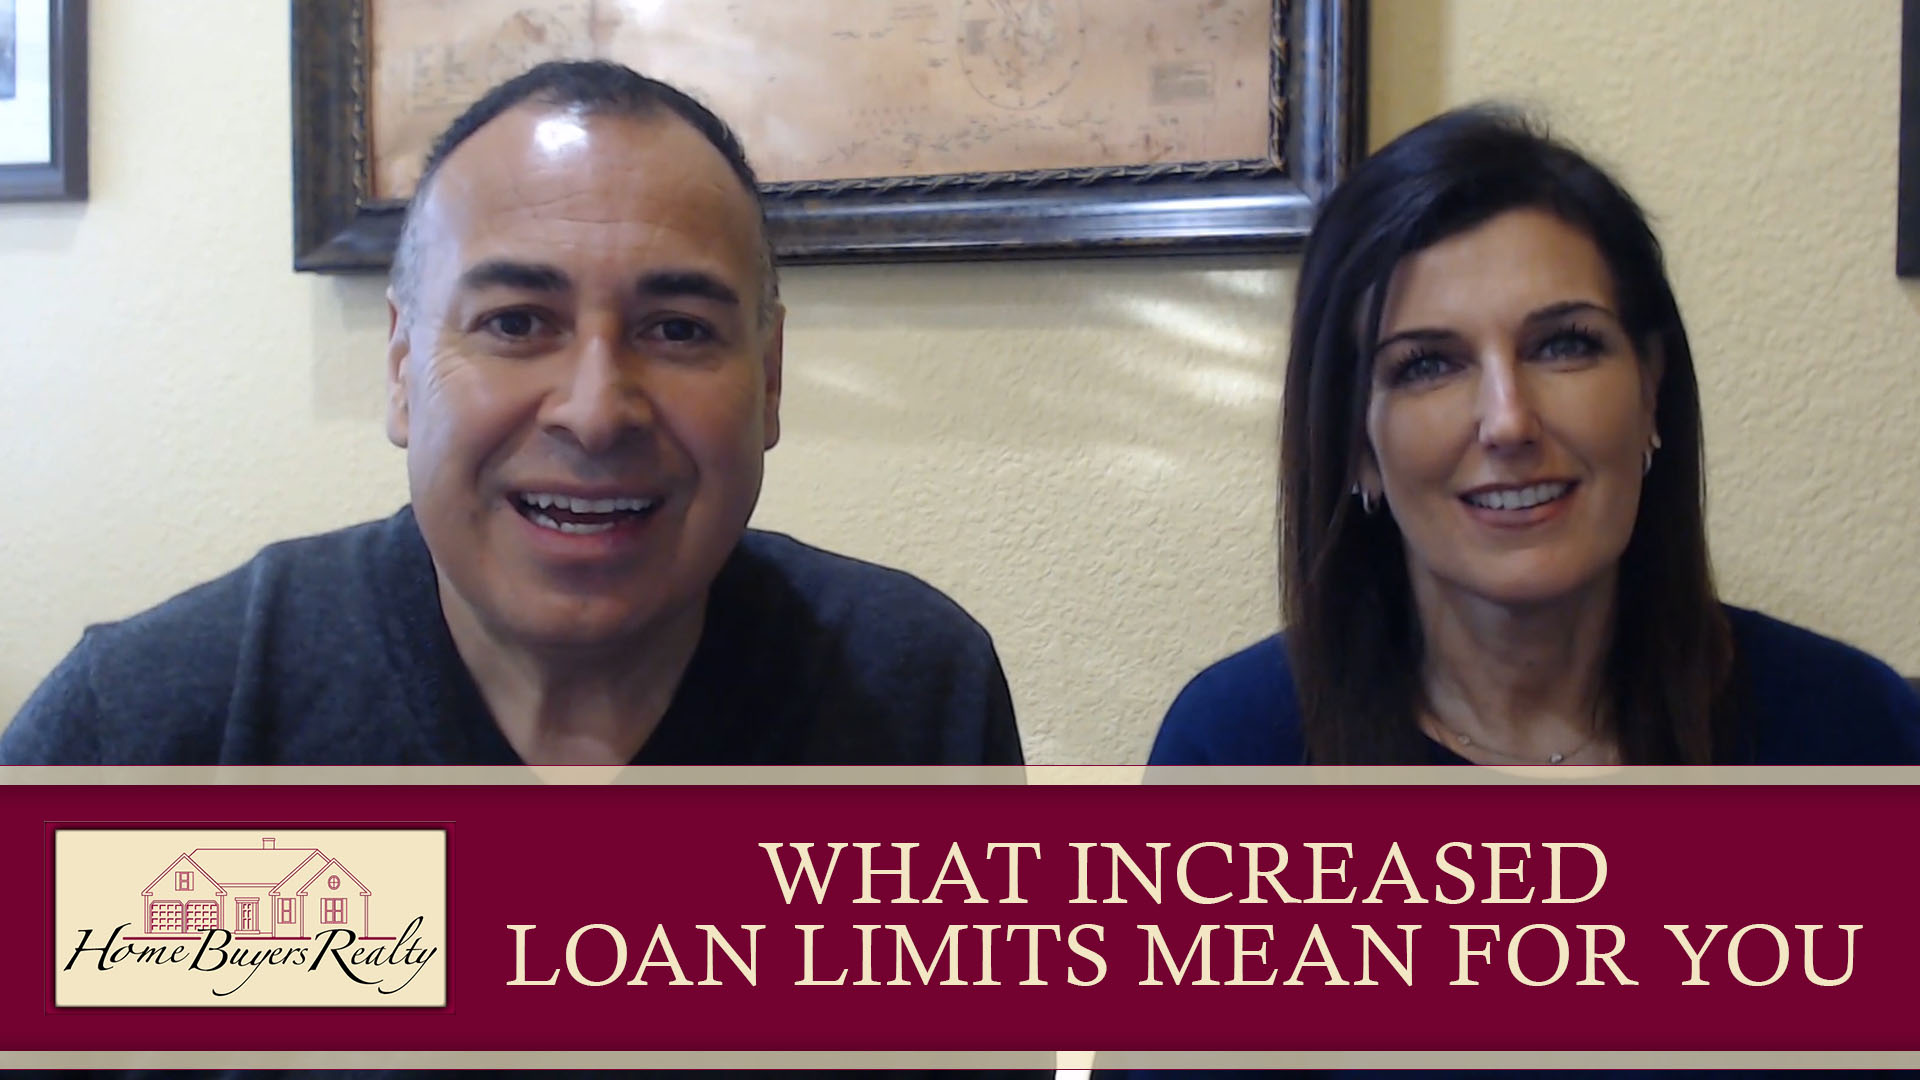 What Do Increased Loan Limits Mean for You?